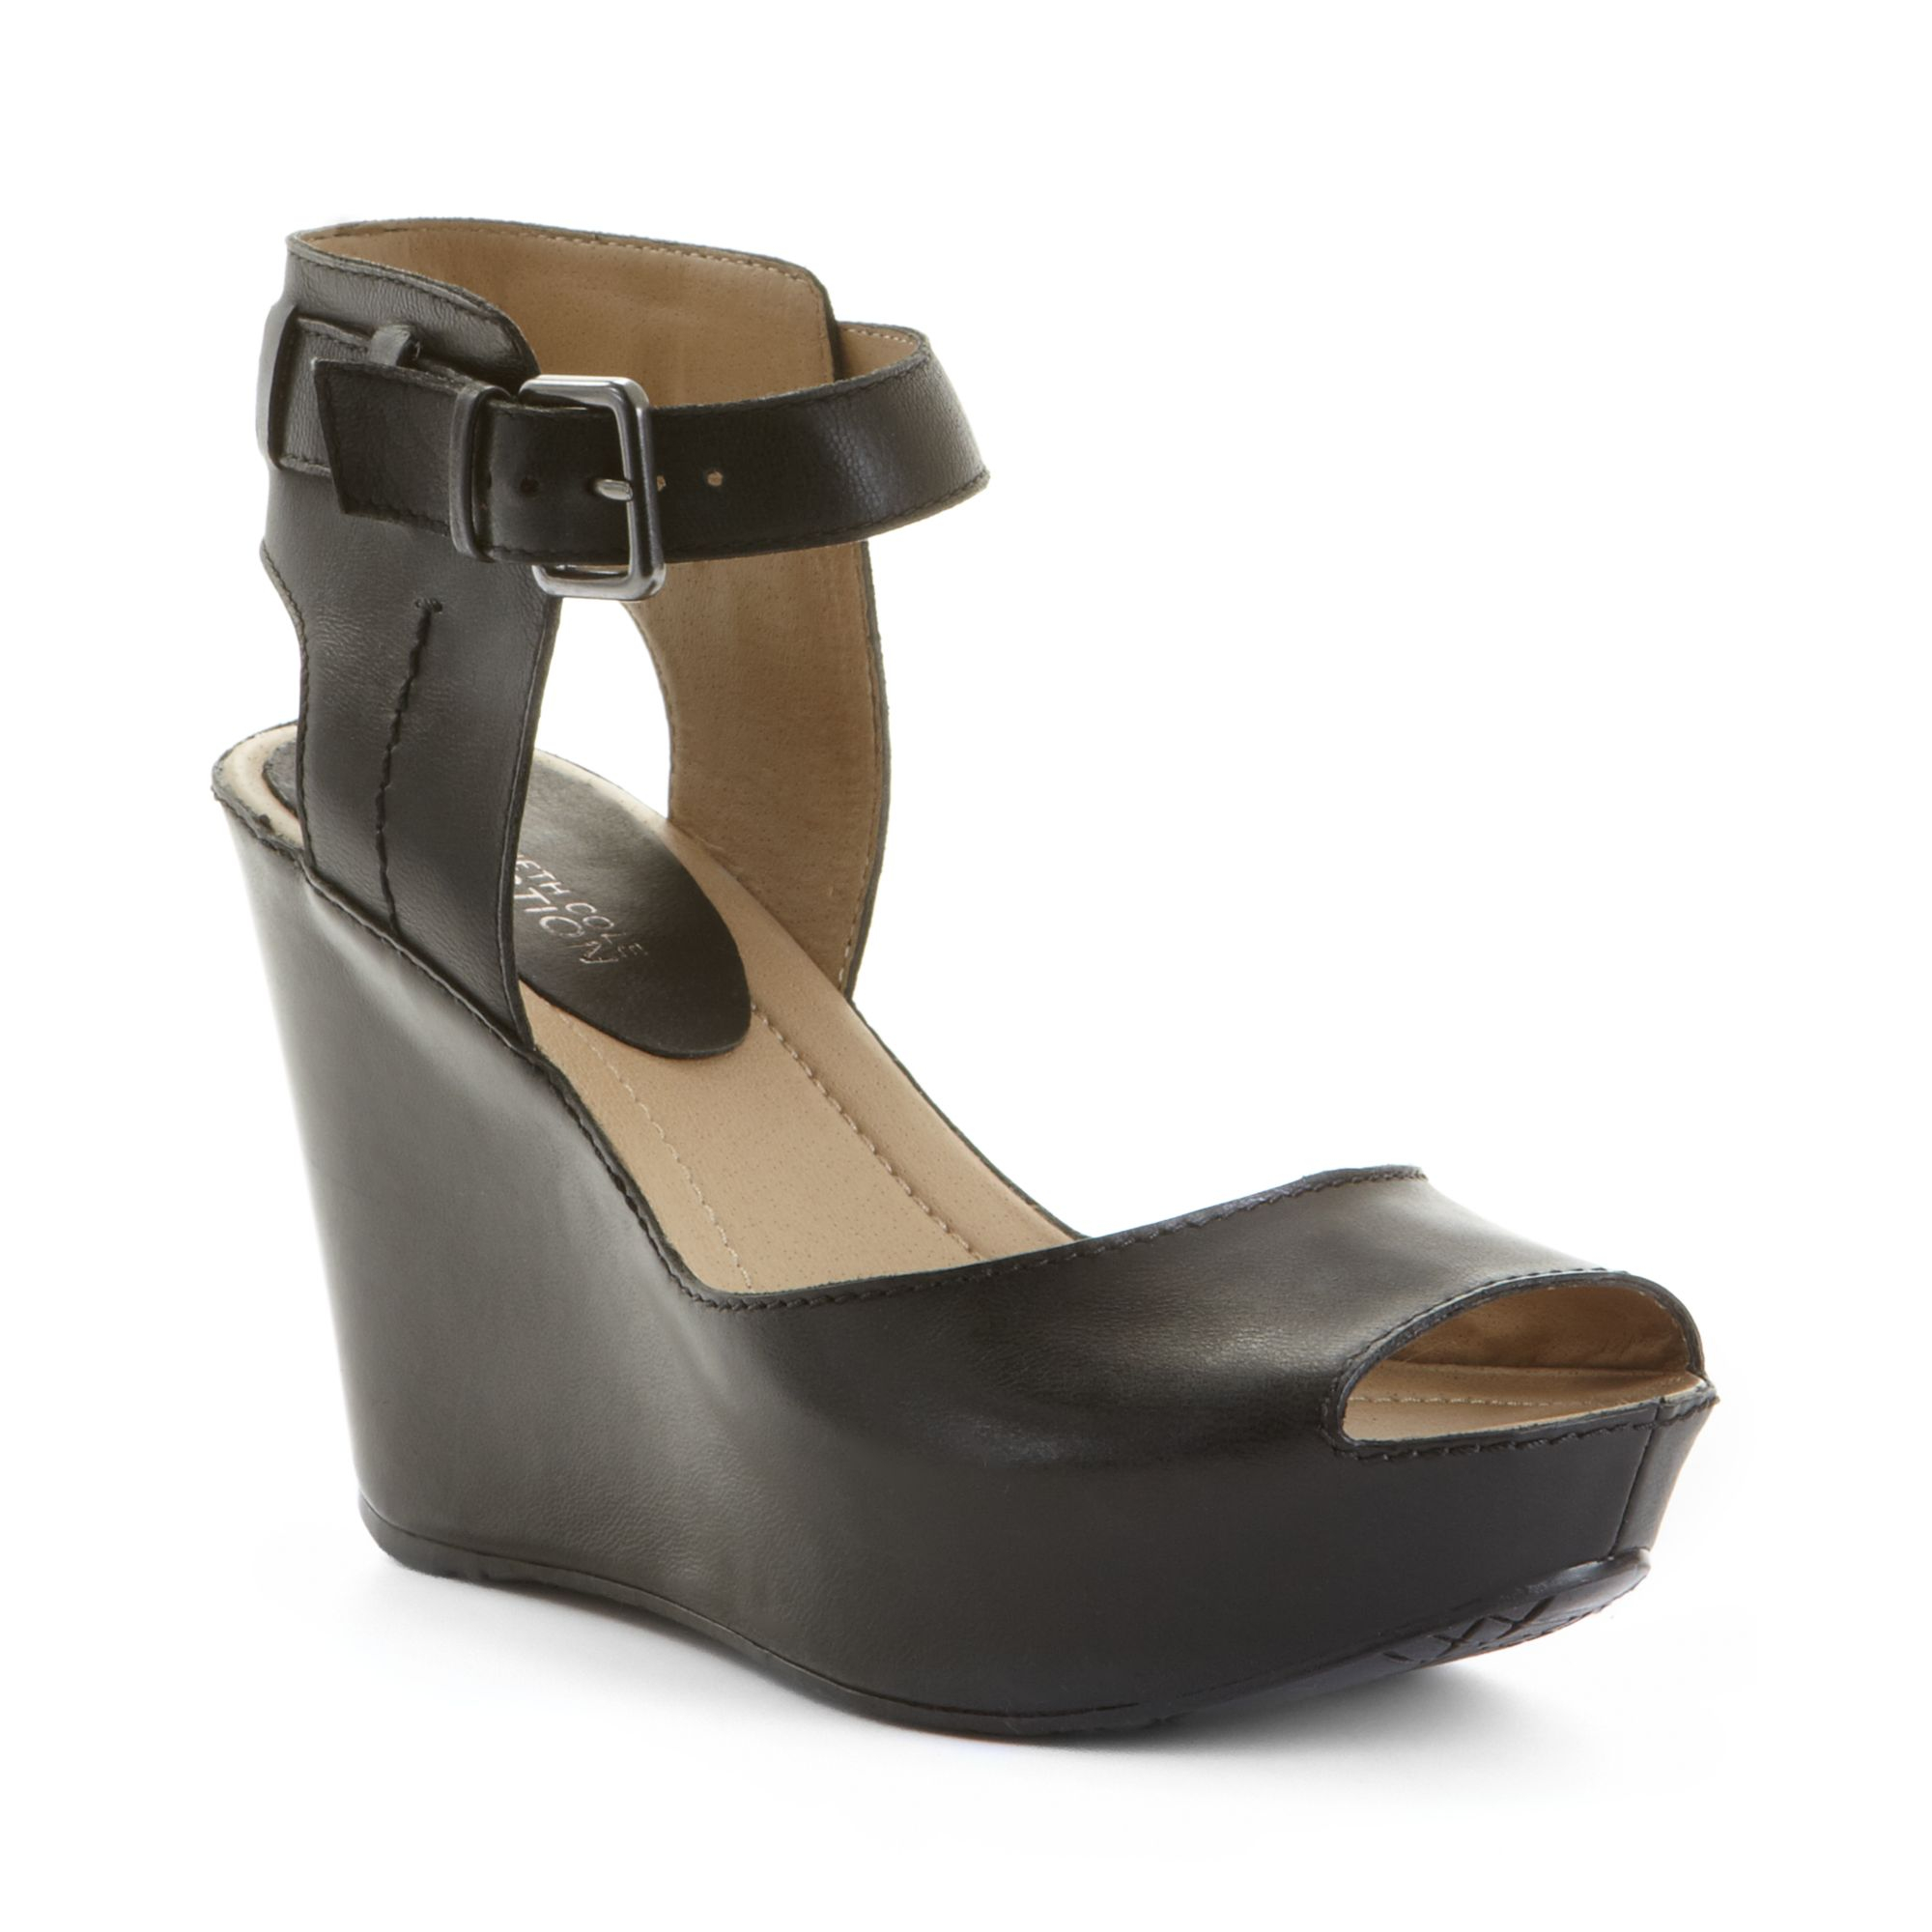 e9d1ec78567 Lyst kenneth cole reaction sole heart wedge sandals in black jpg 2000x2000 Kenneth  cole black wedge